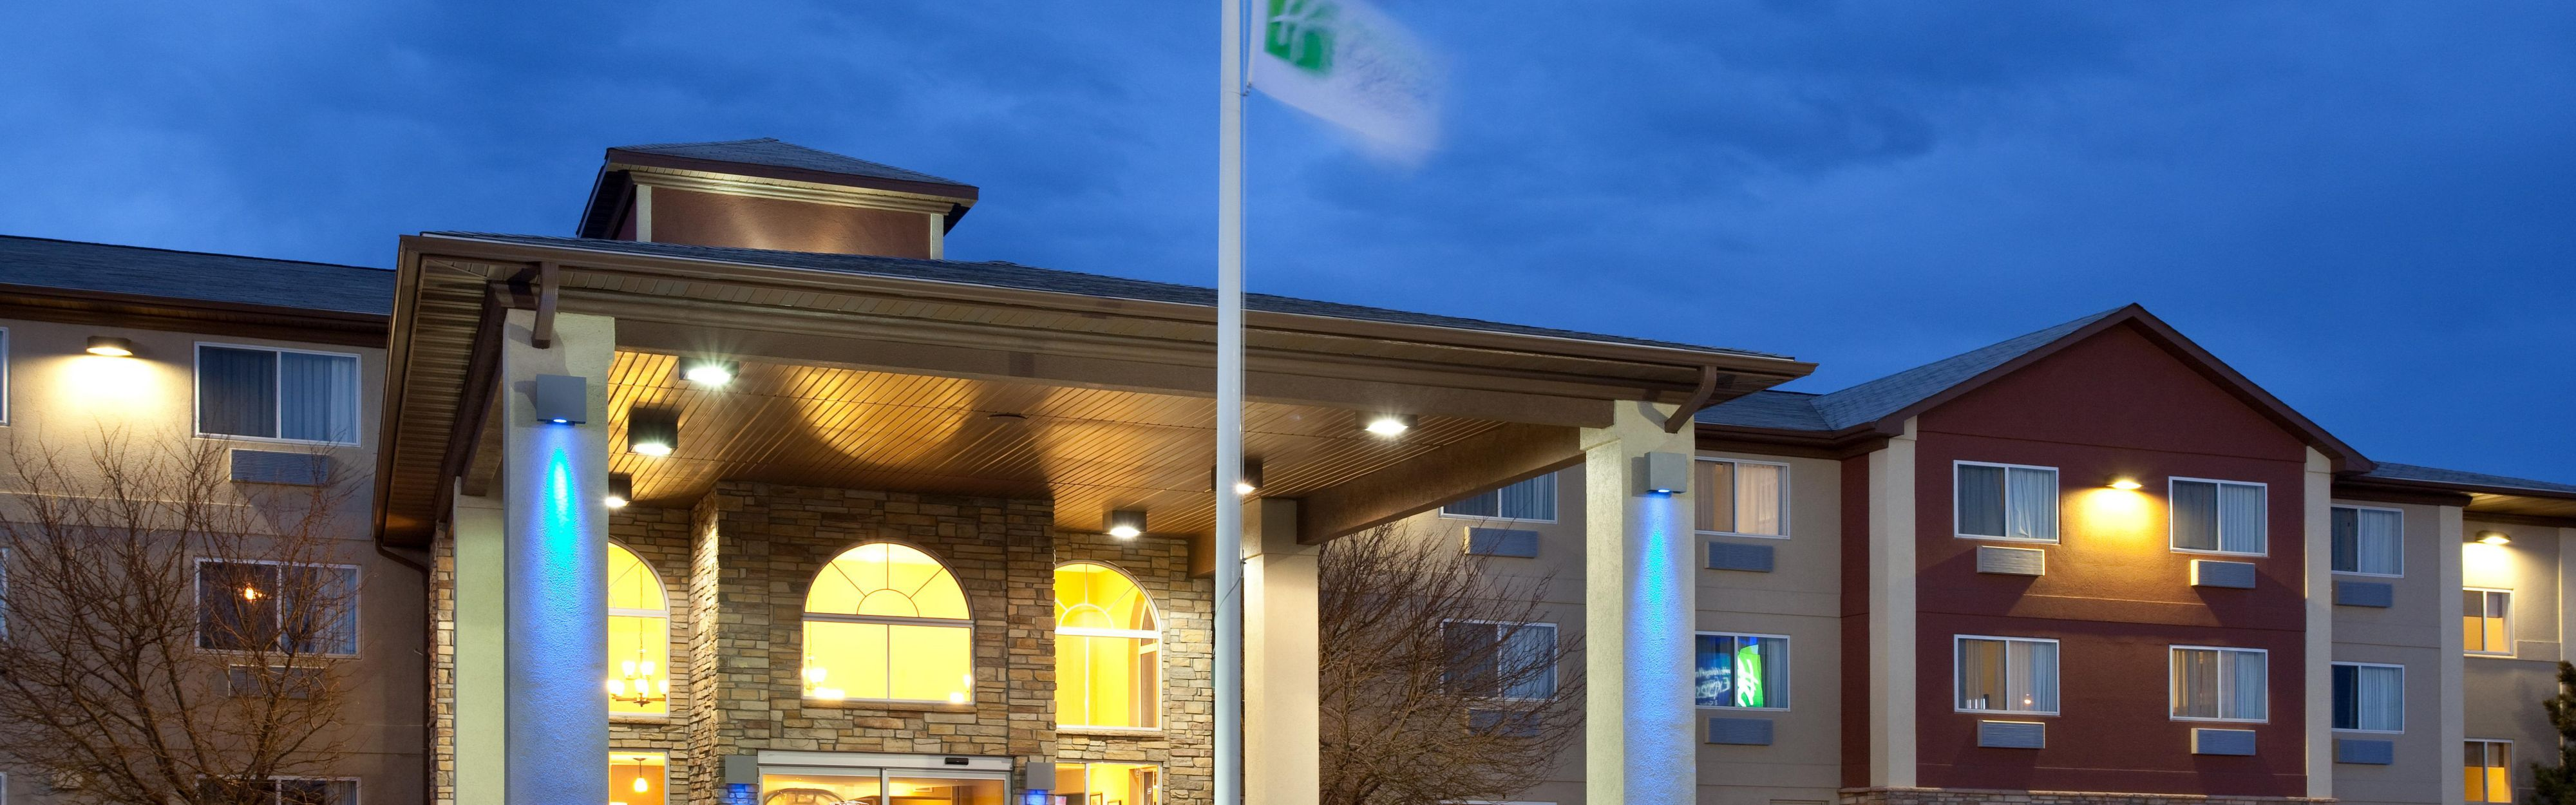 Holiday Inn Express & Suites Scottsbluff-Gering image 0